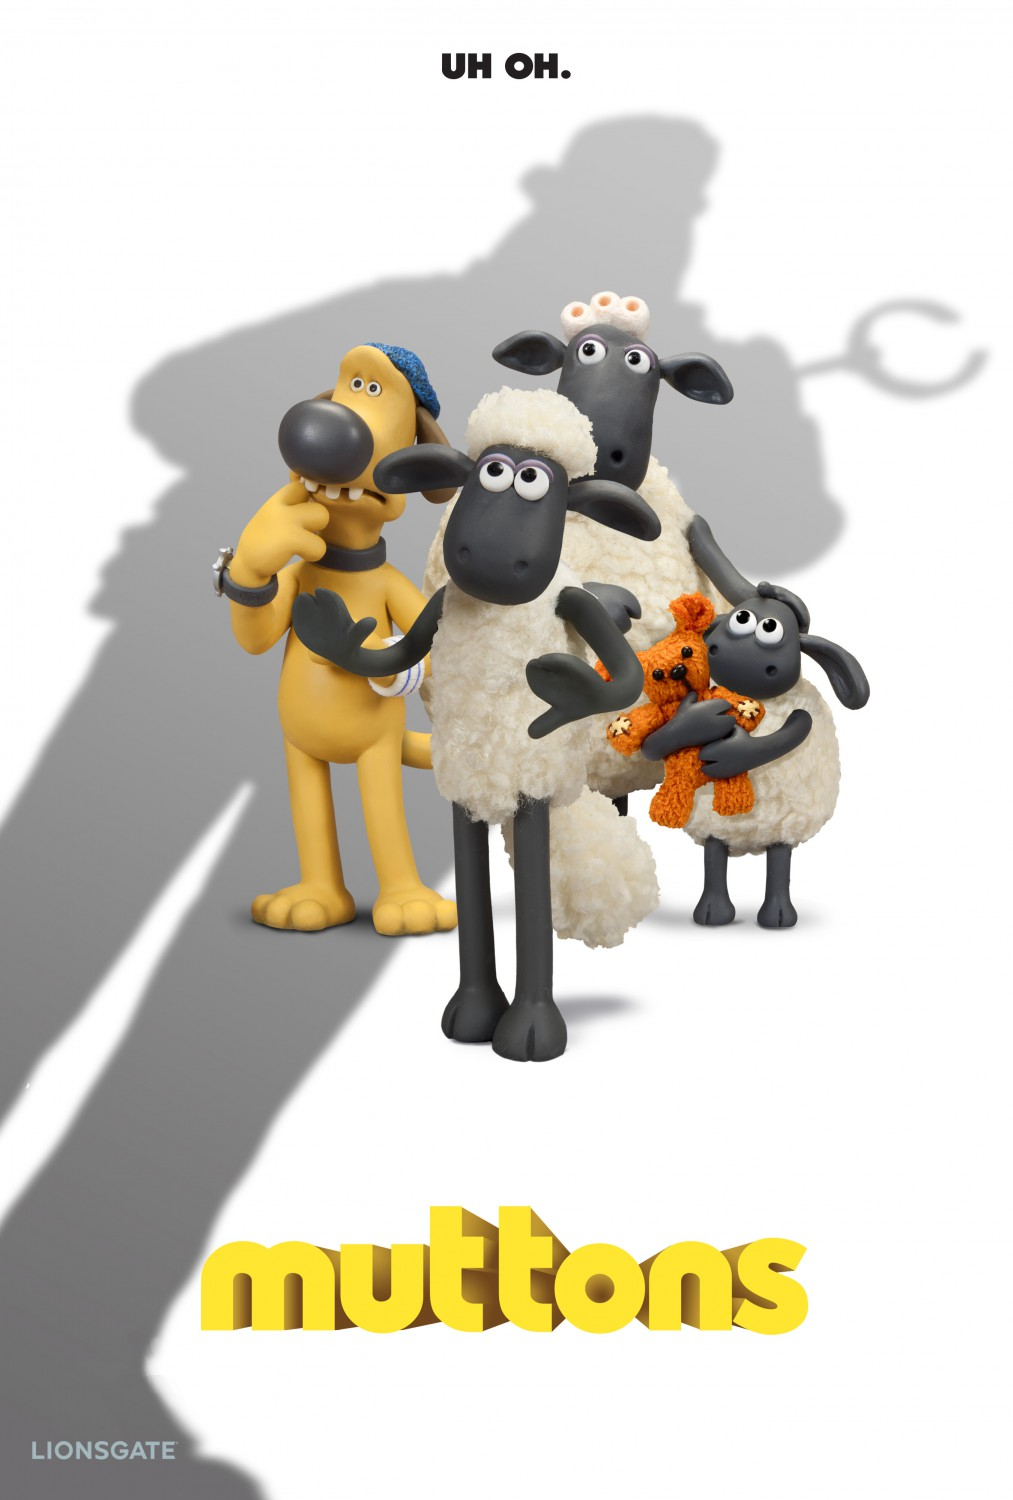 shaun_the_sheep_ver13_xlg